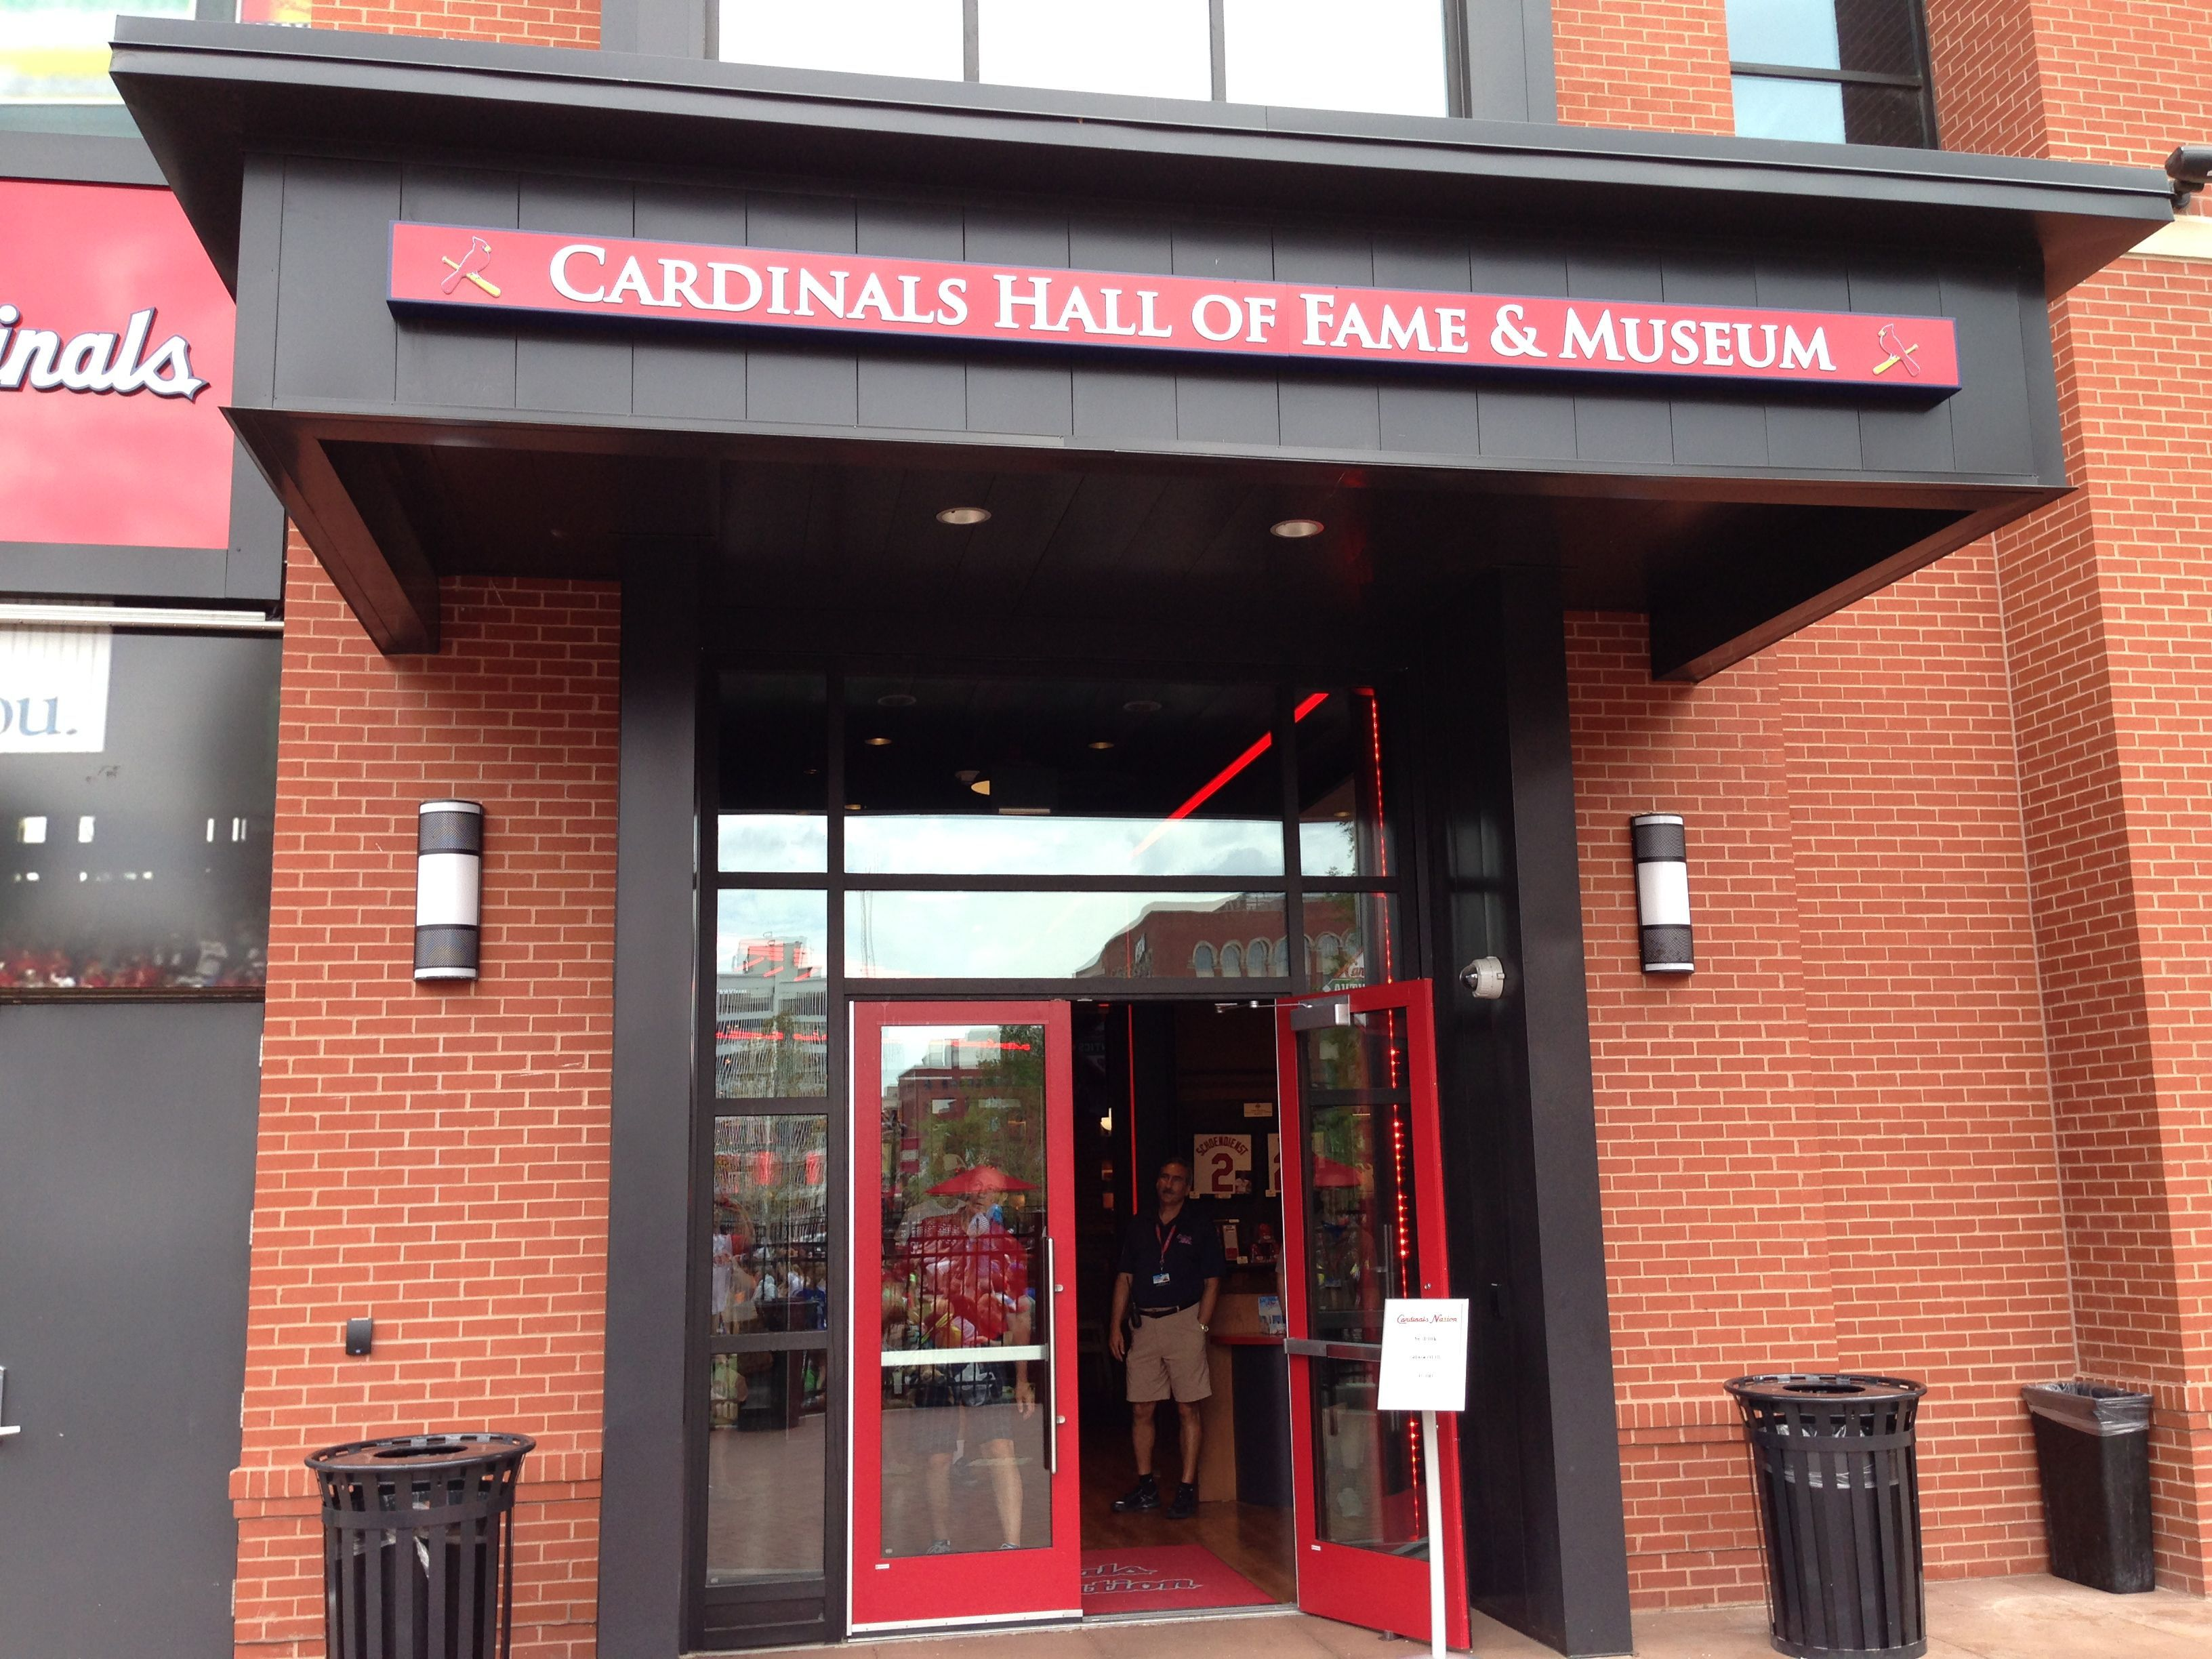 St. Louis Cardinals Hall of Fame and Museum